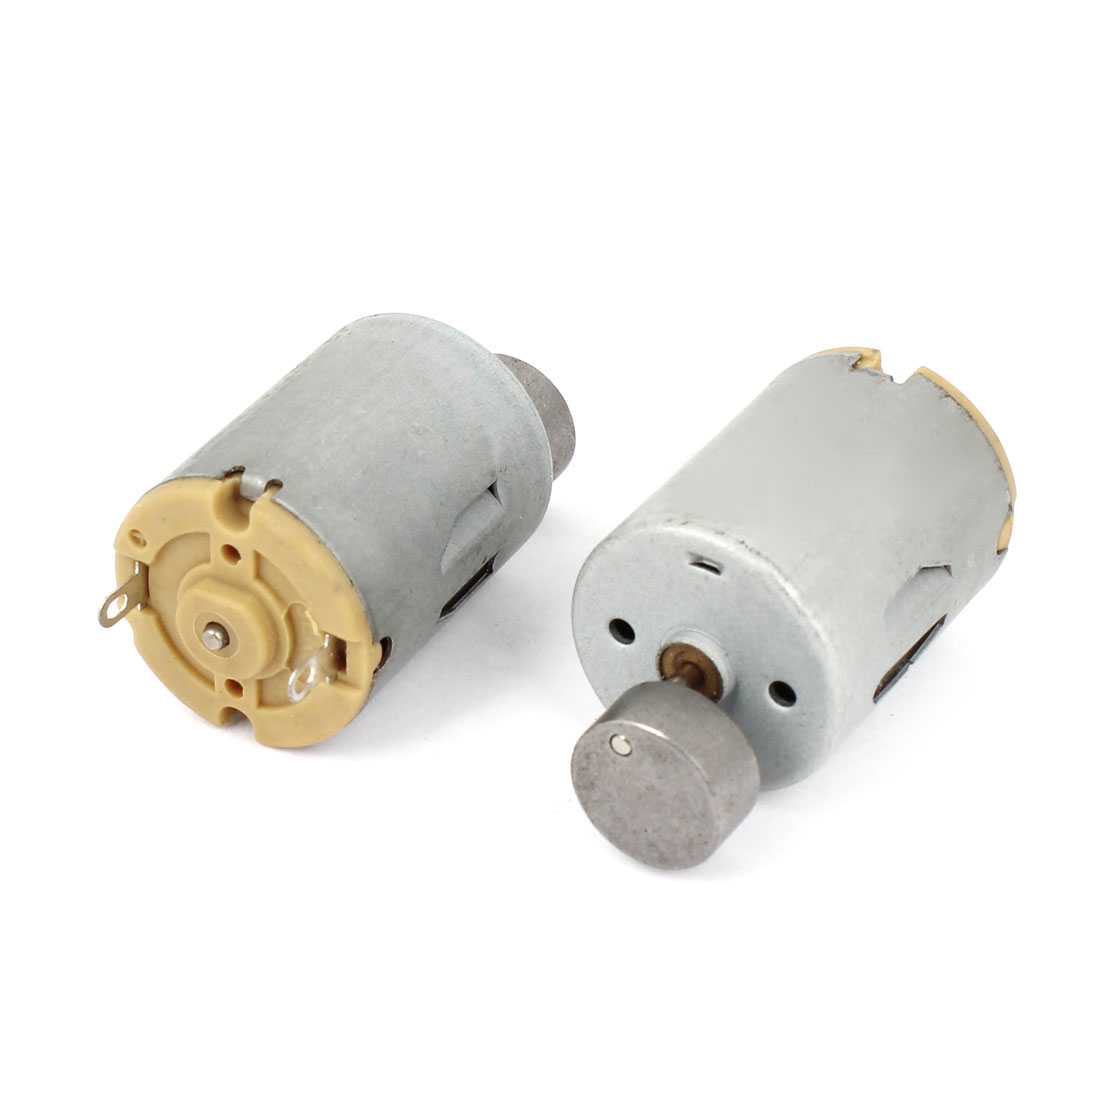 2pcs 12500 RPM Magnetic Micro Massager Motor Gray DC 3V-9V